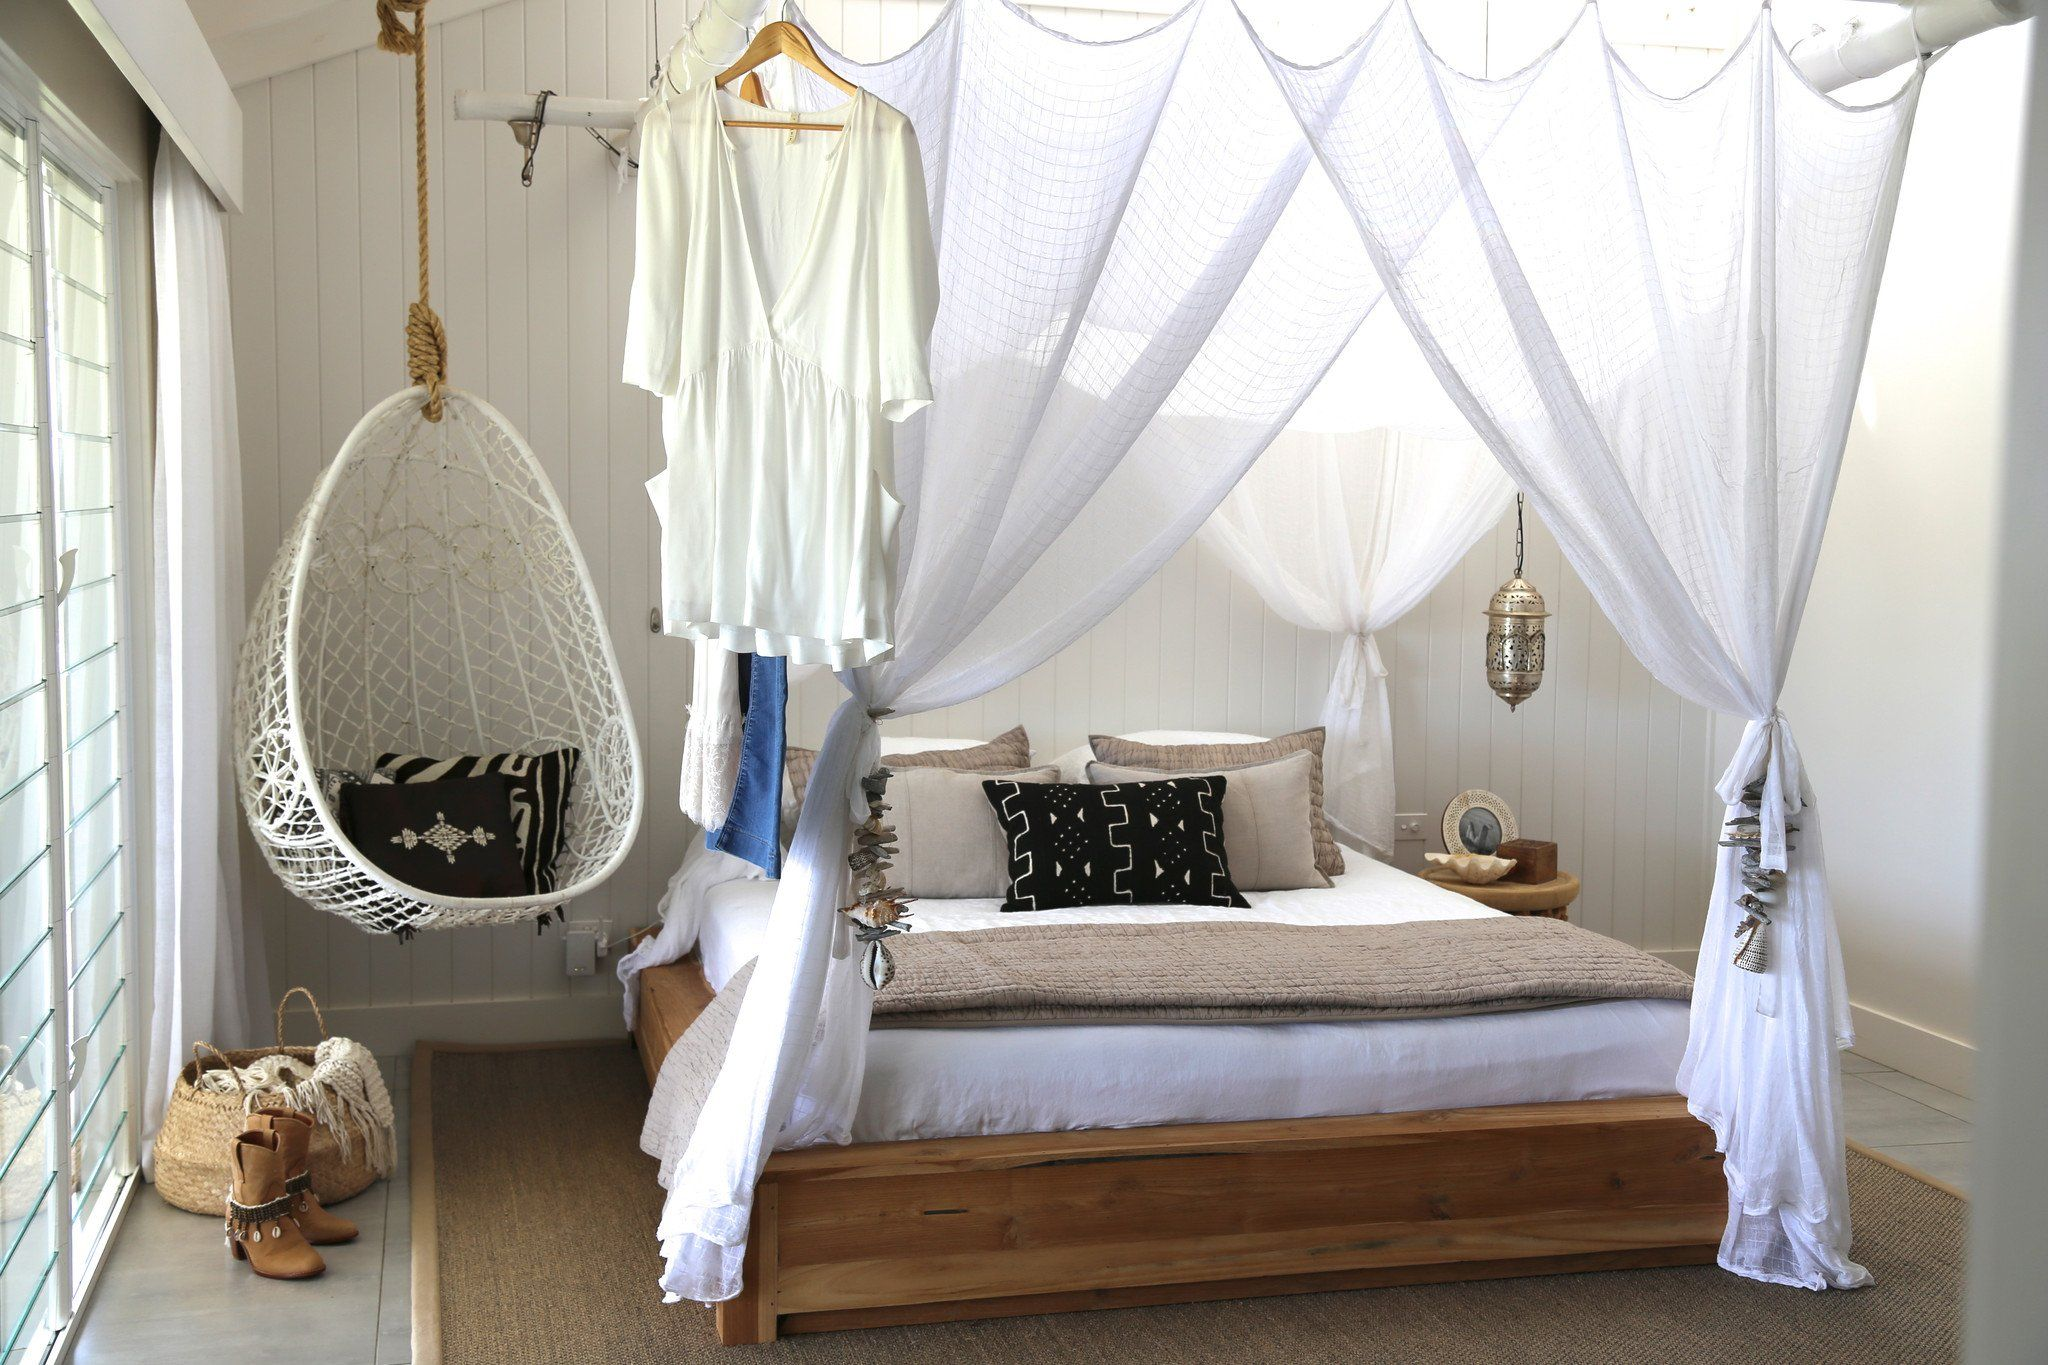 Image result for hanging chair tylerus bedroom pinterest